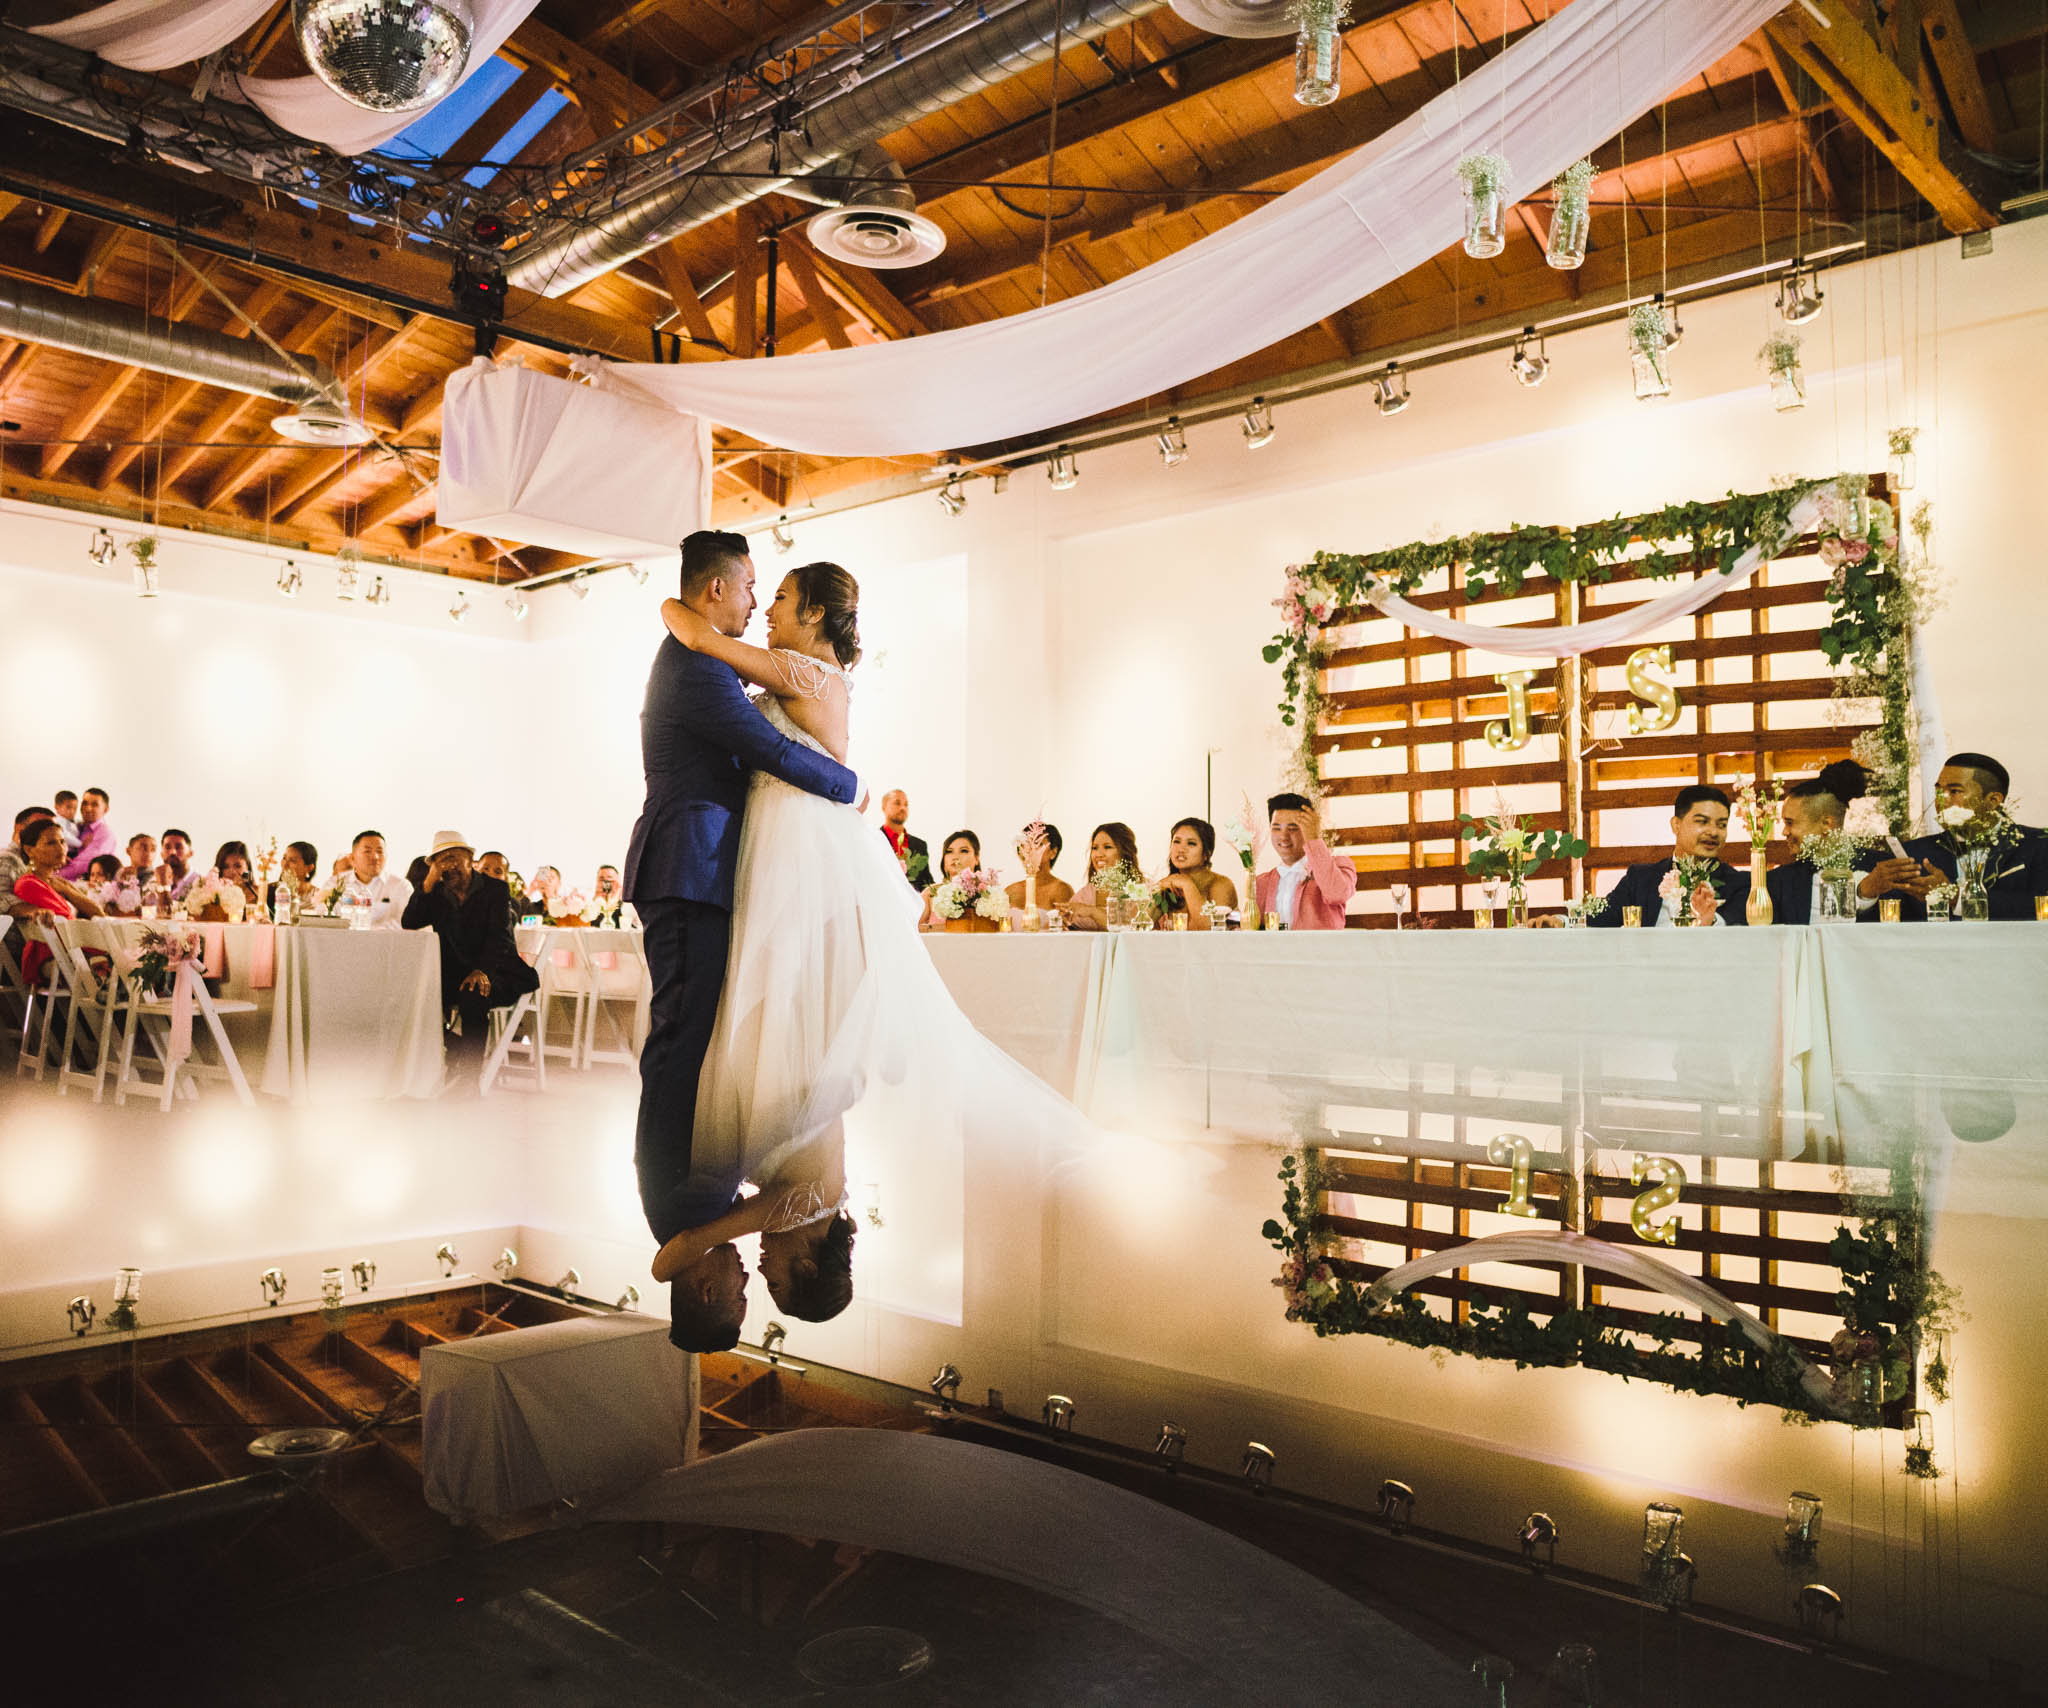 ©Isaiah & Taylor Photography - Los Angeles Wedding Photographer - Lot 613 Warehouse Space-71.jpg